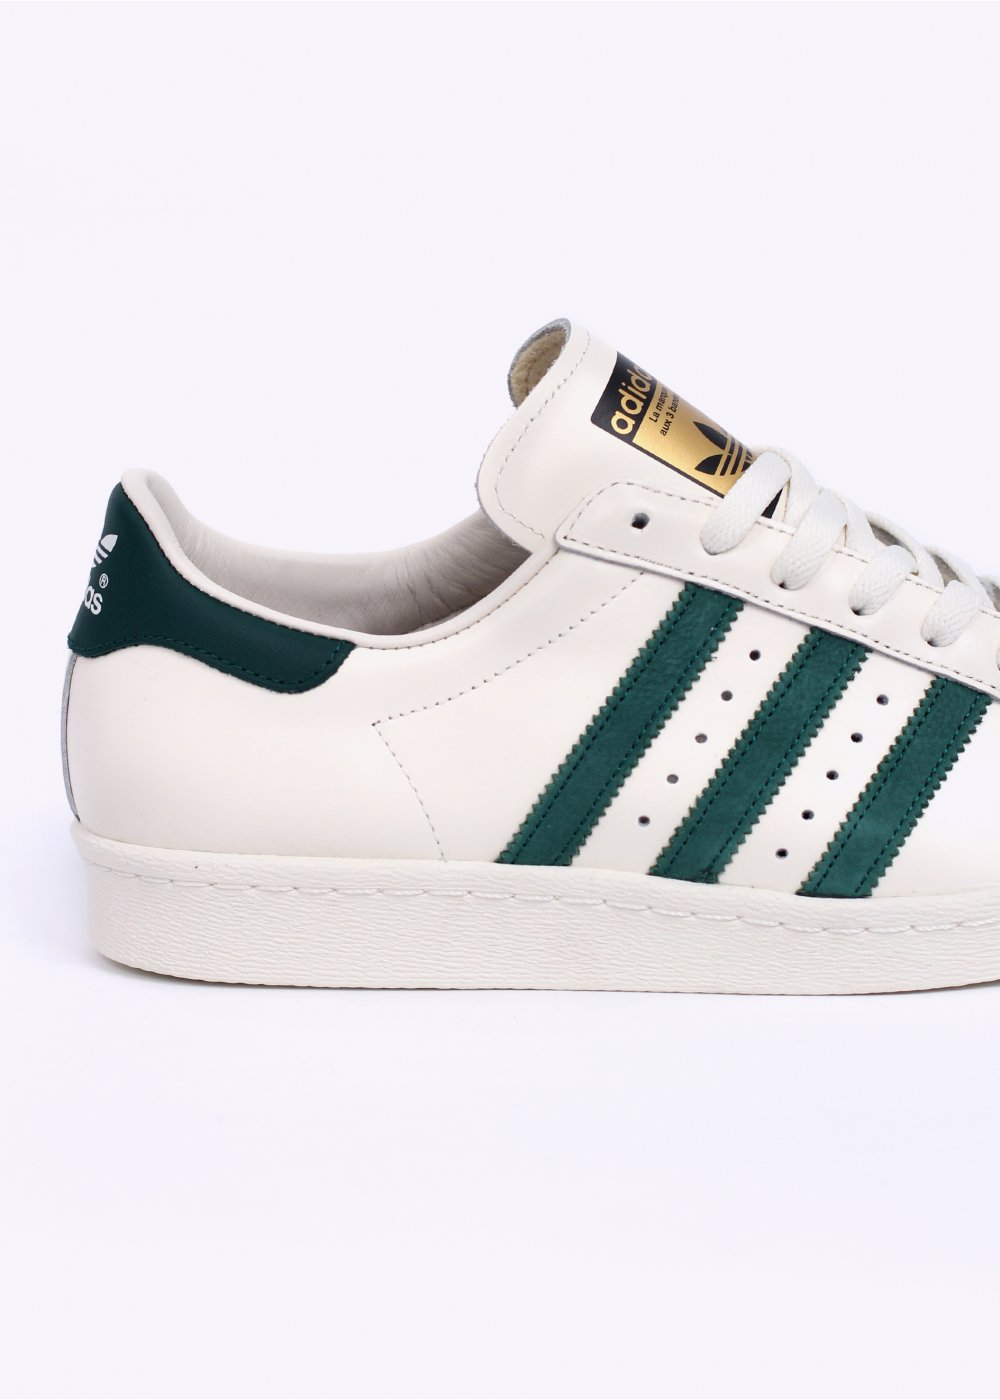 Adidas Superstar Green White